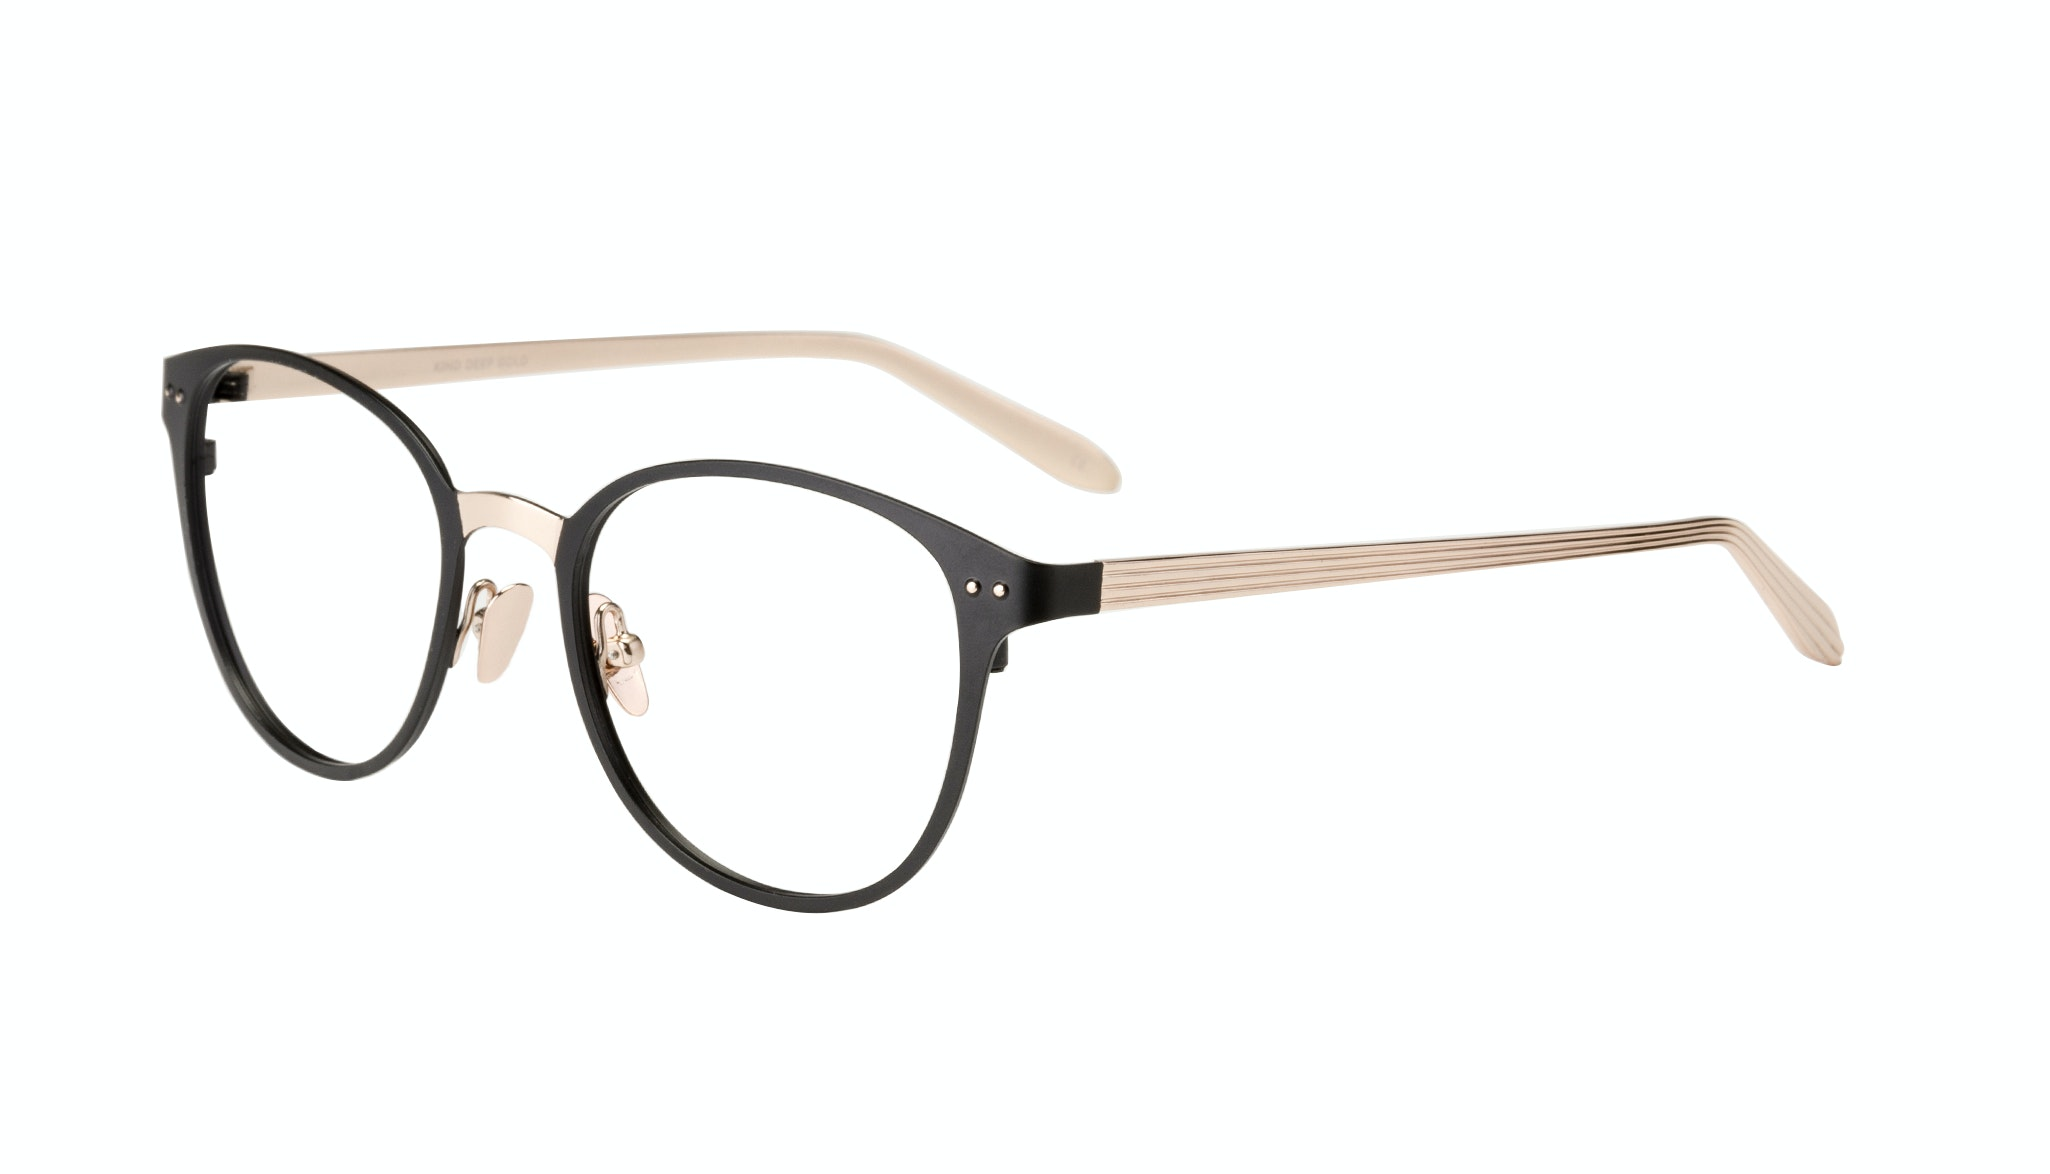 Affordable Fashion Glasses Rectangle Eyeglasses Women Kind Deep Gold Tilt